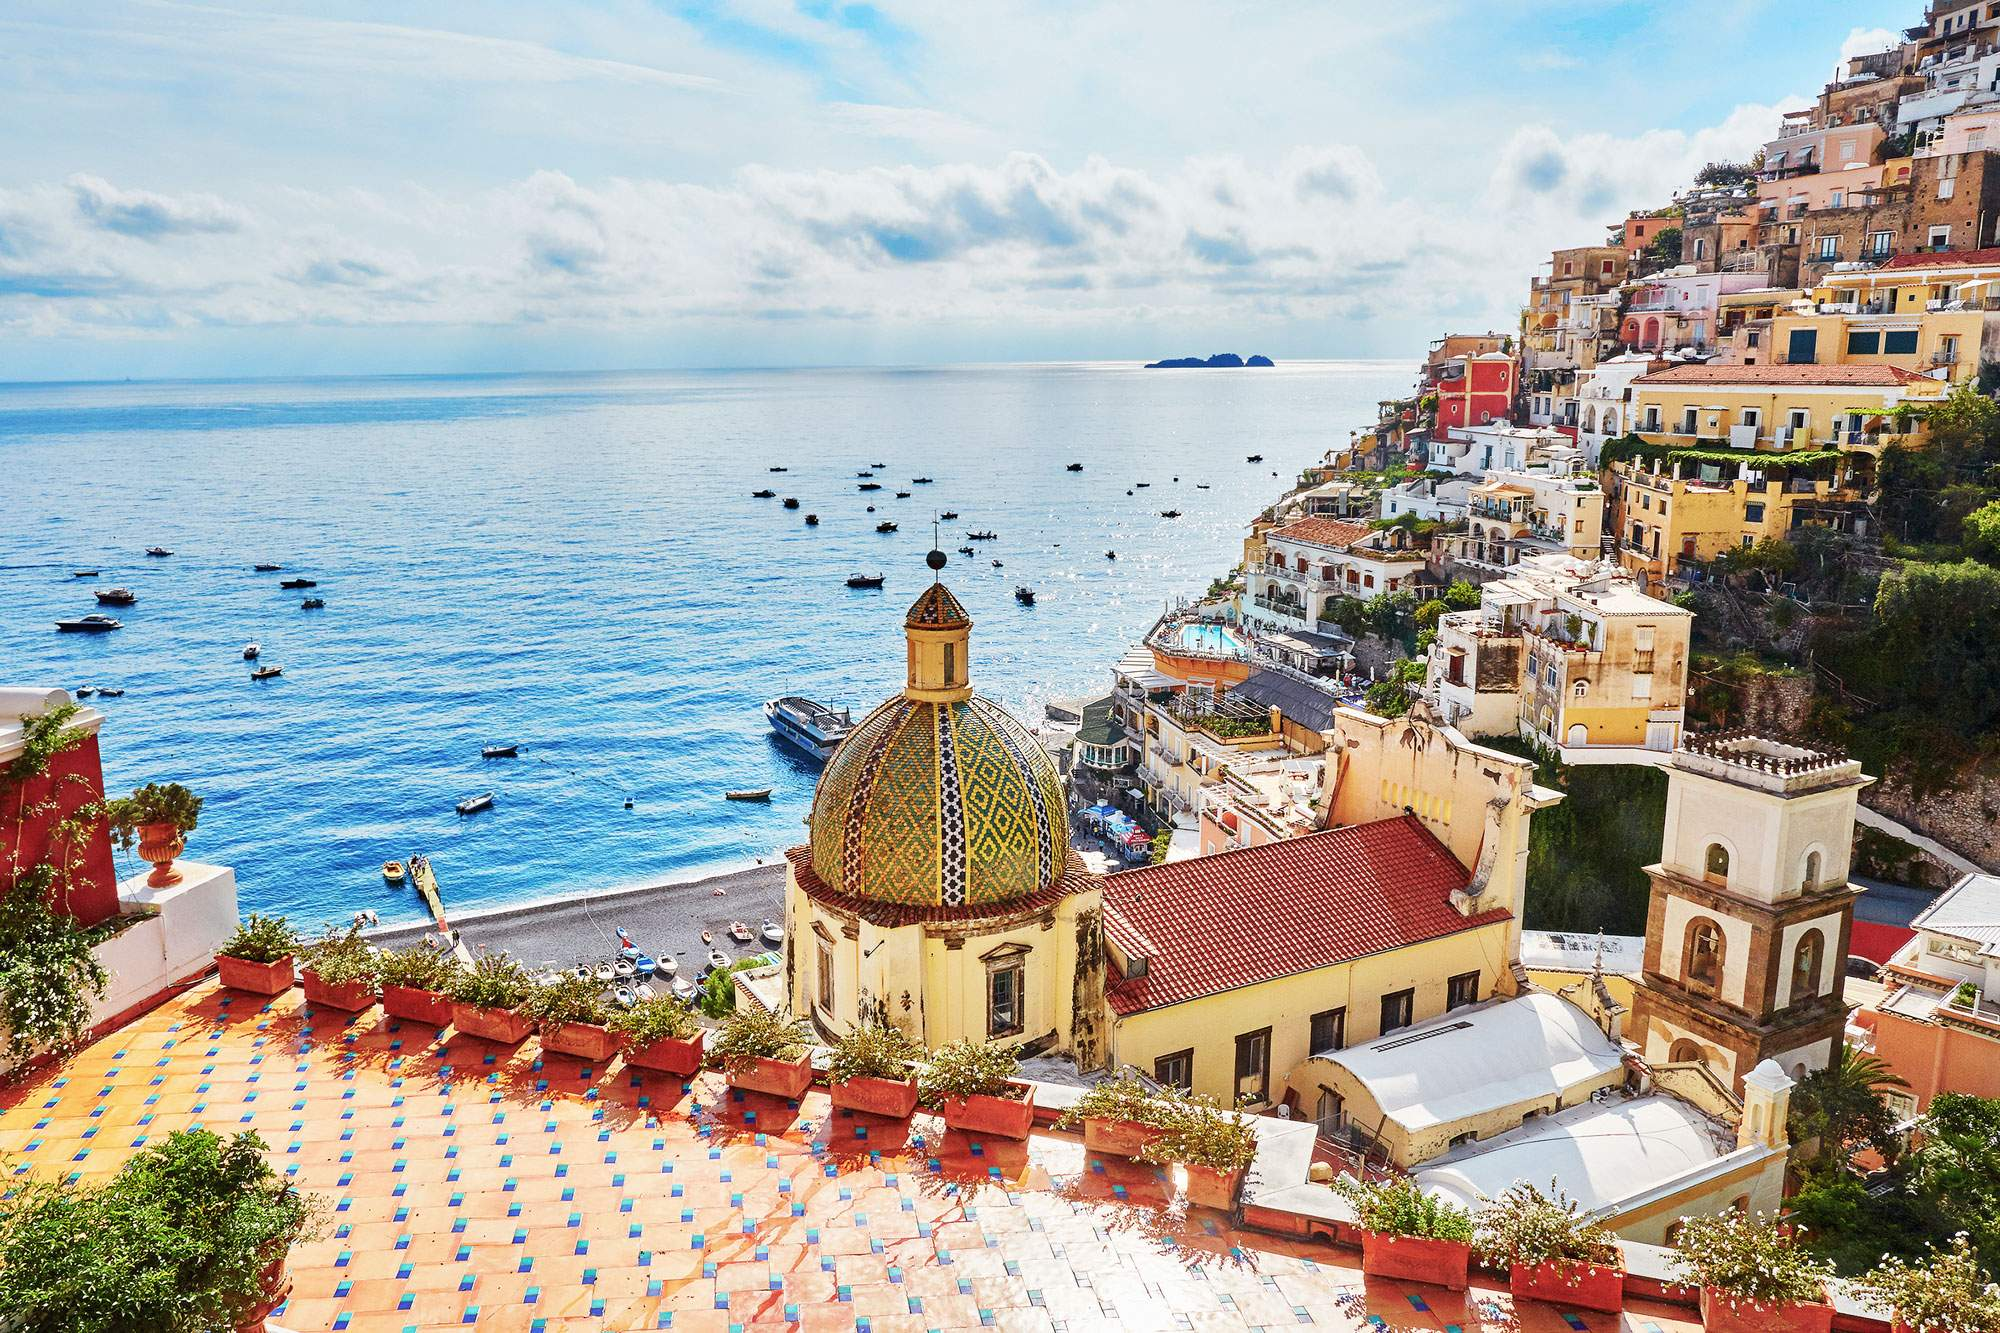 positano-amalfi-coast-town-church-italy-seaview